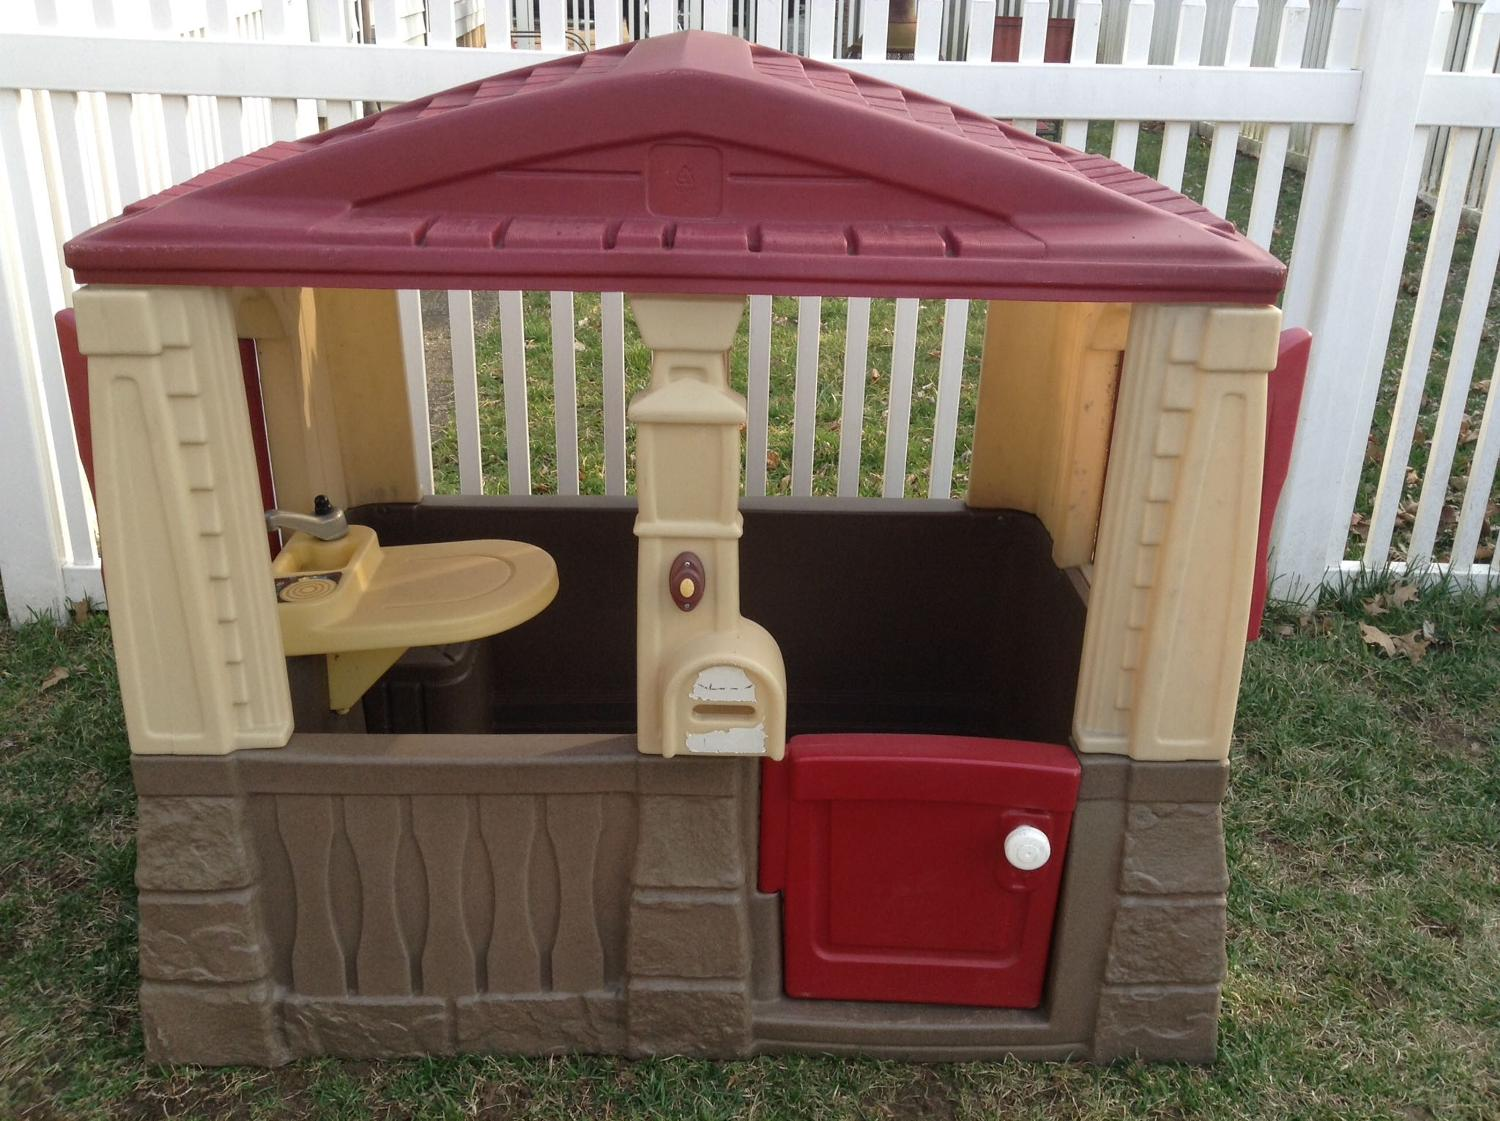 Find More Step 2 Playhouse For Sale At Up To 90 Off